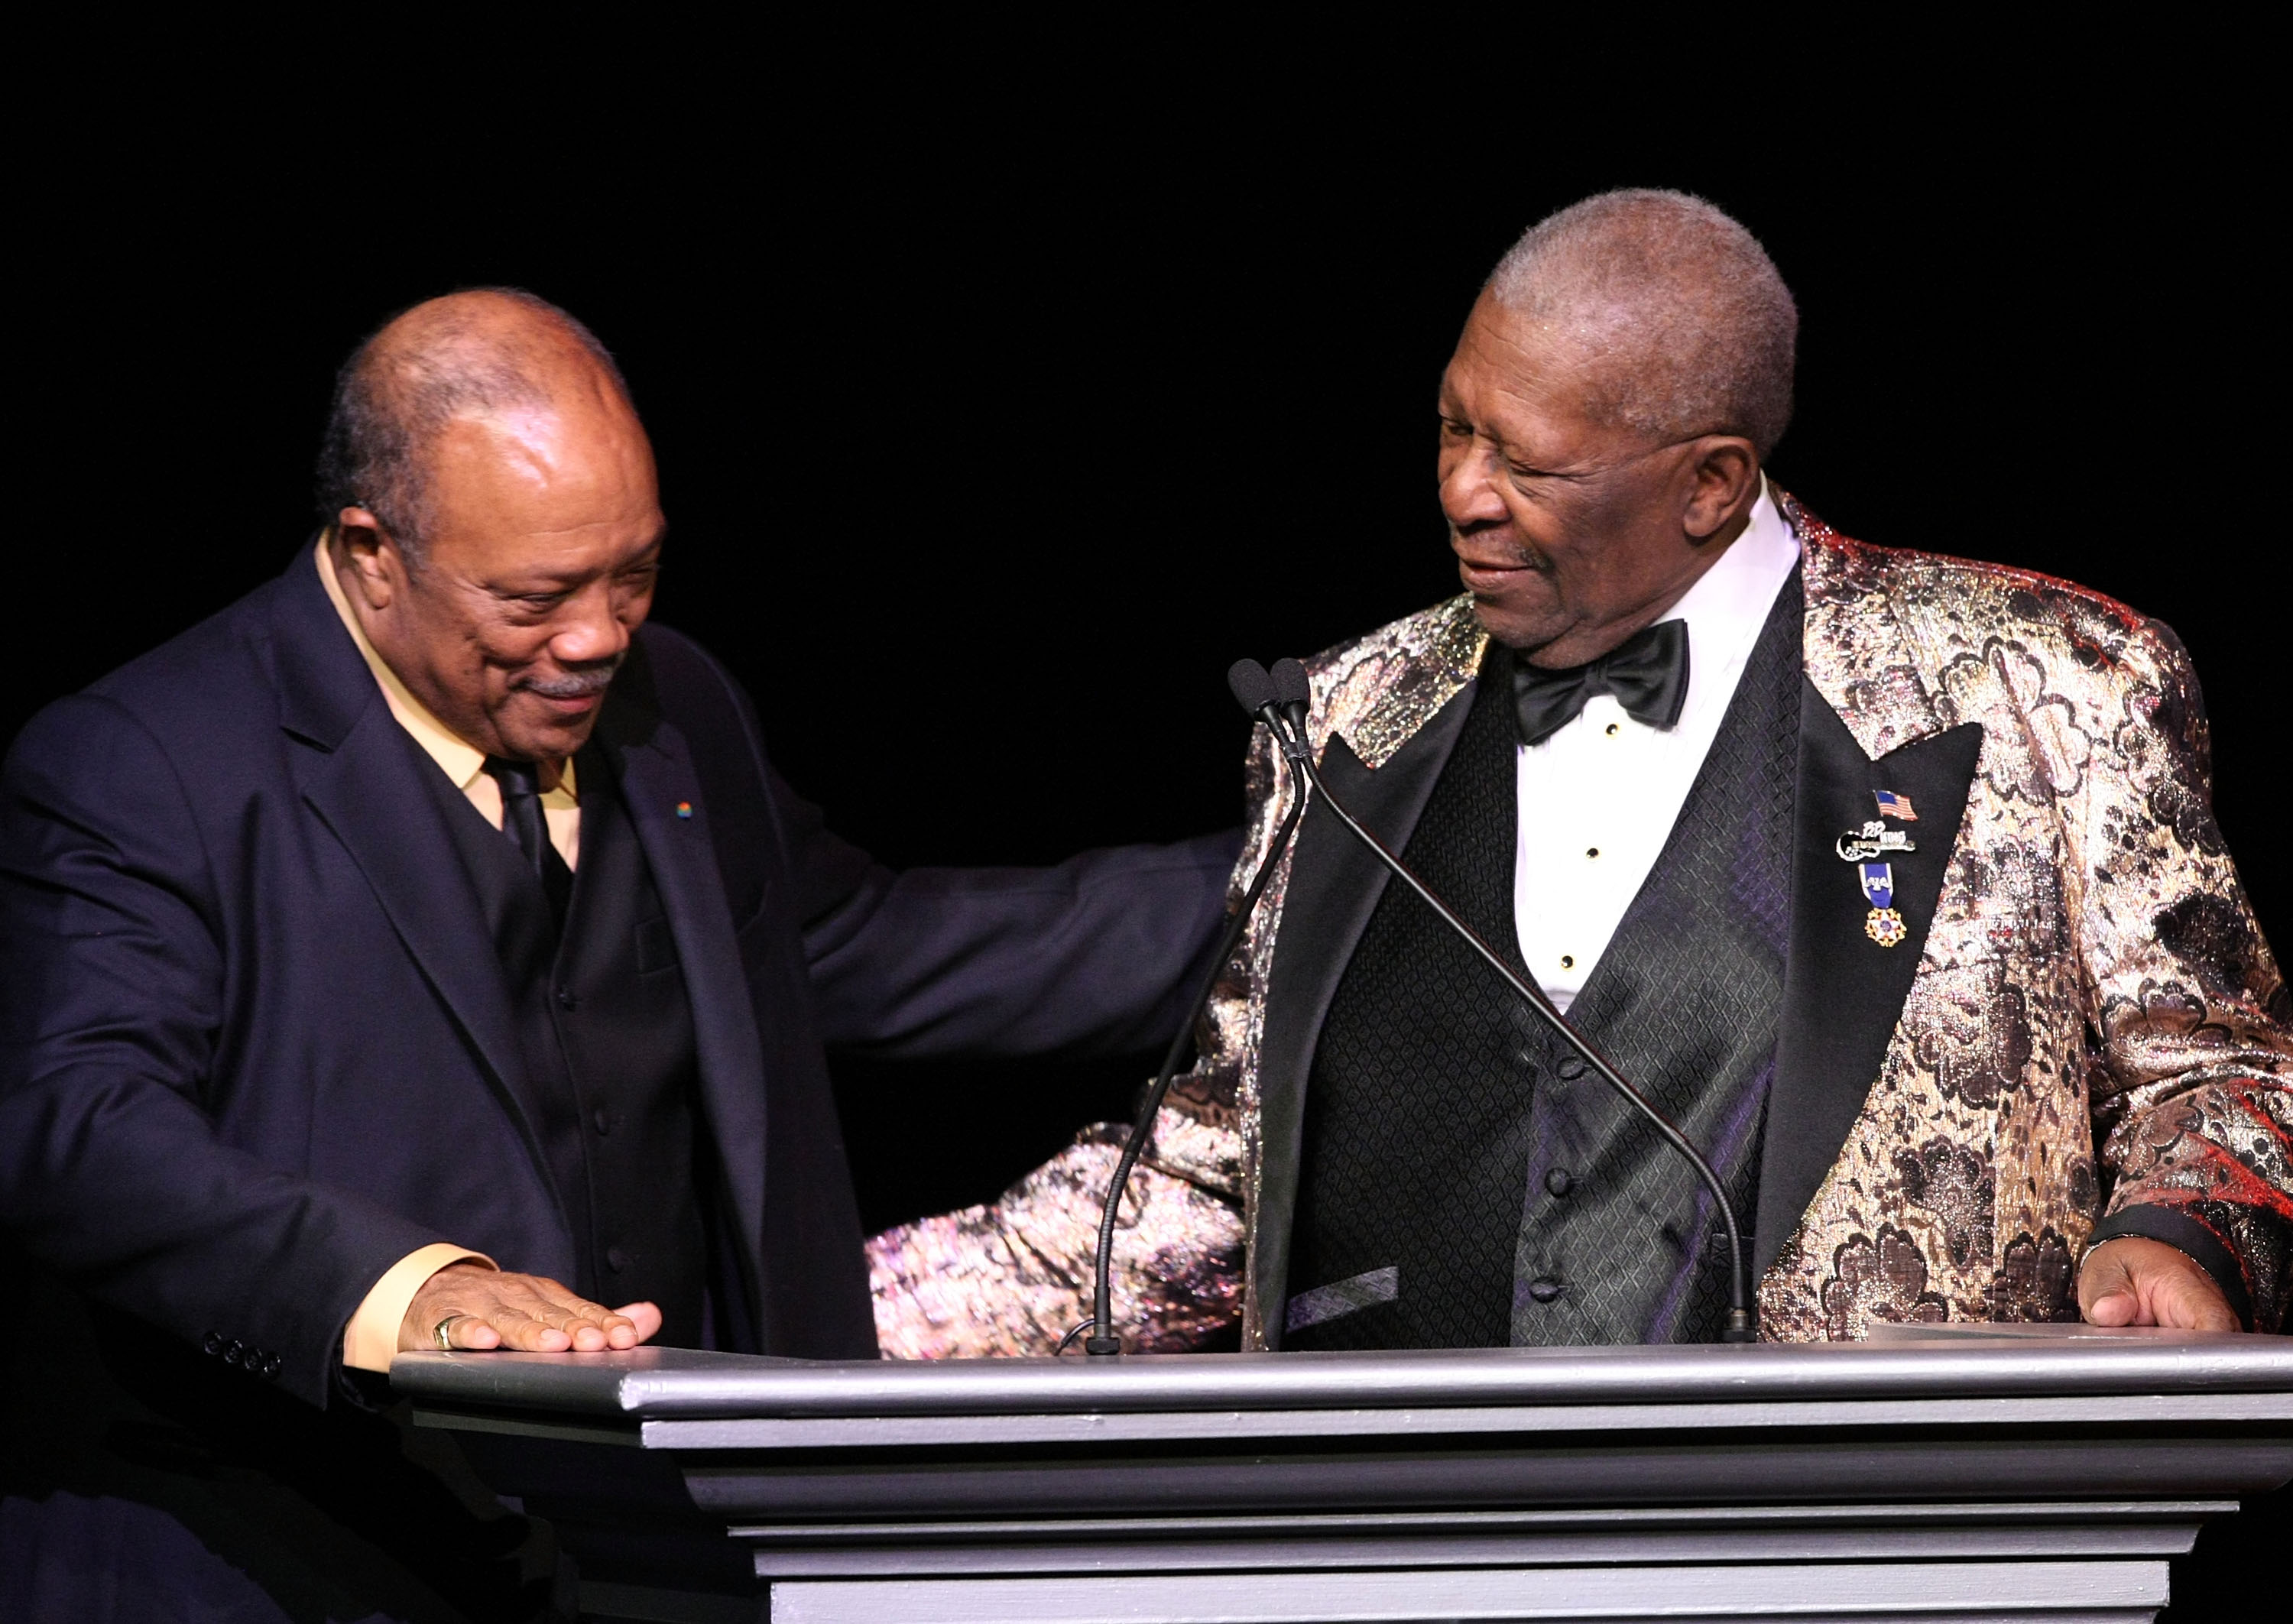 Musician Quincy Jones (L) presents an award to musician B.B. King onstage during the Thelonious Monk Institute of Jazz honoring B.B. King event held at the Kodak Theatre on October 26, 2008 in Los Angeles, California.